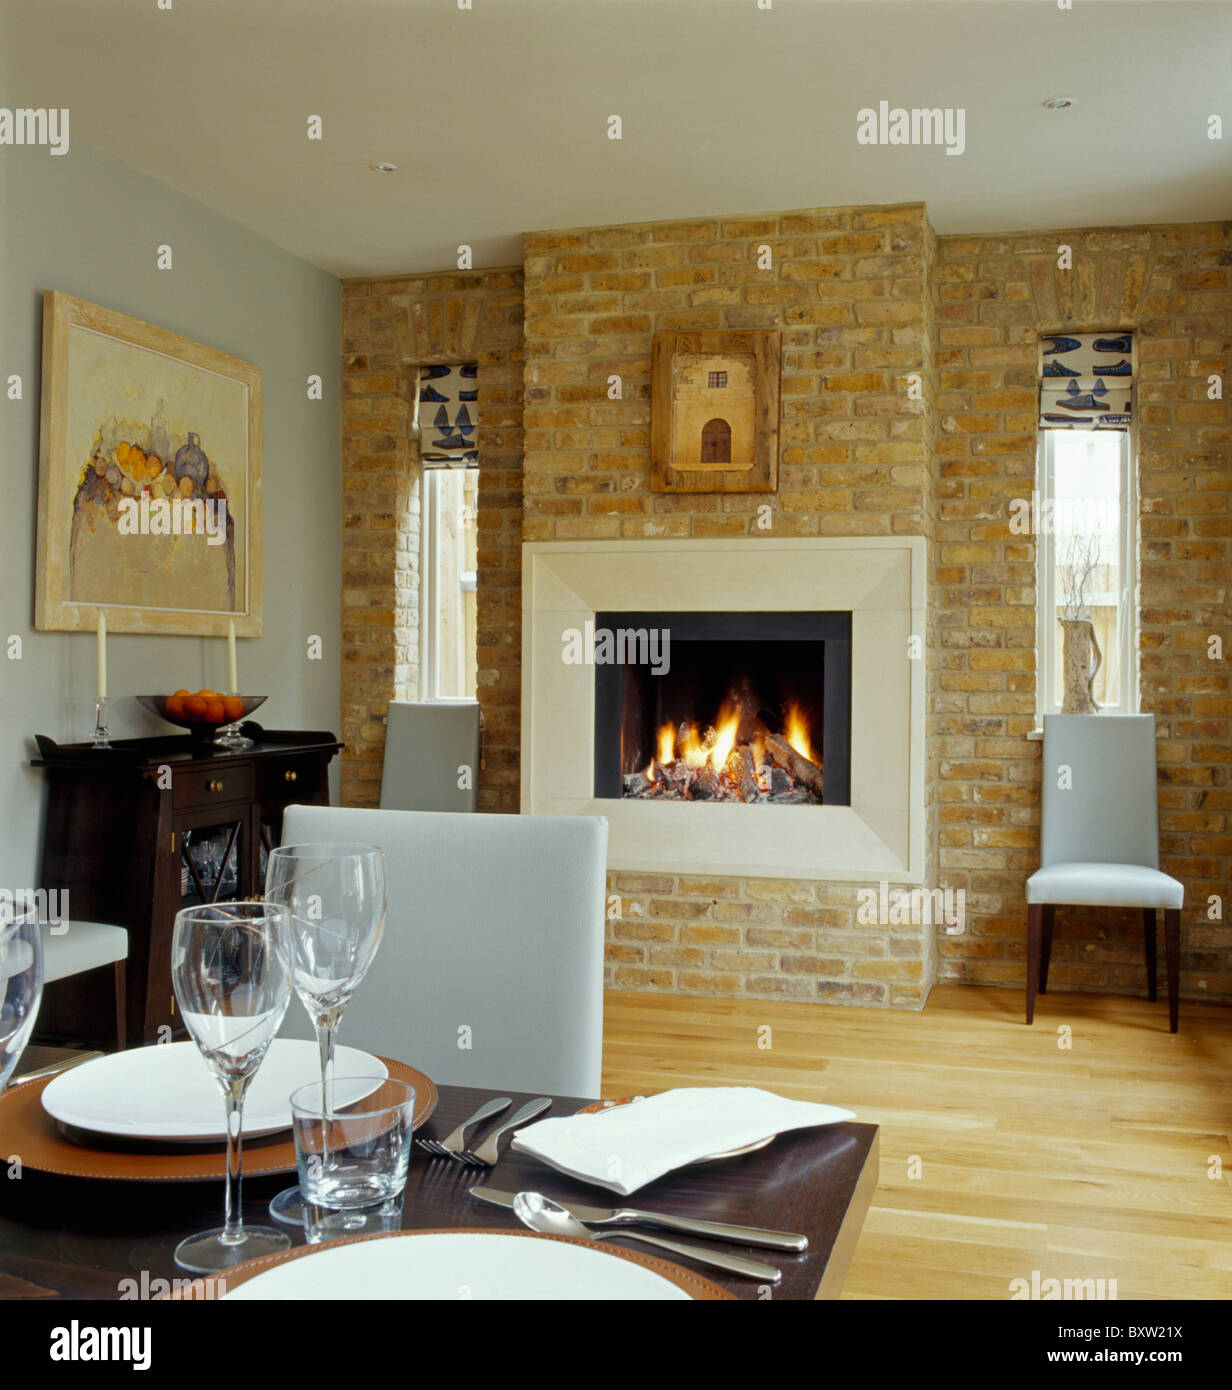 Lighted Fire In Fireplace Exposed Brick Wall Modern Dining Room With White Leather Chairs And Wooden Flooring